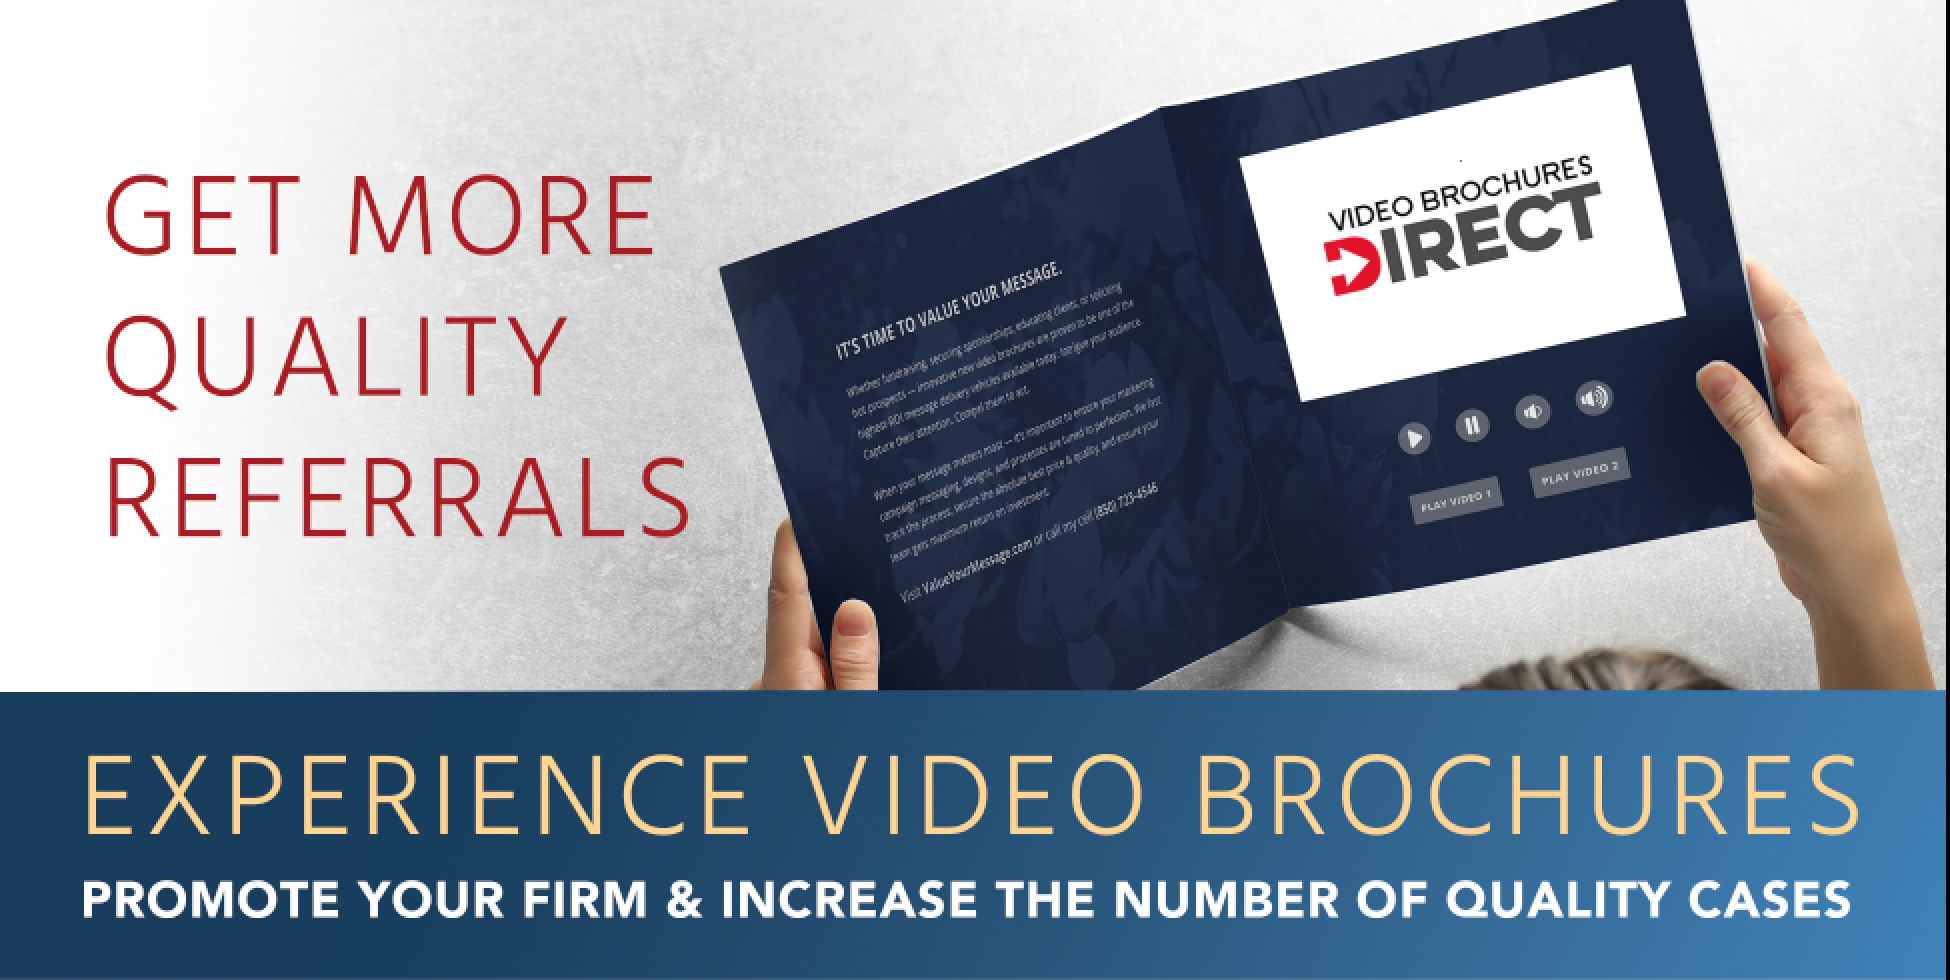 Experience video brochures and promote your firm.